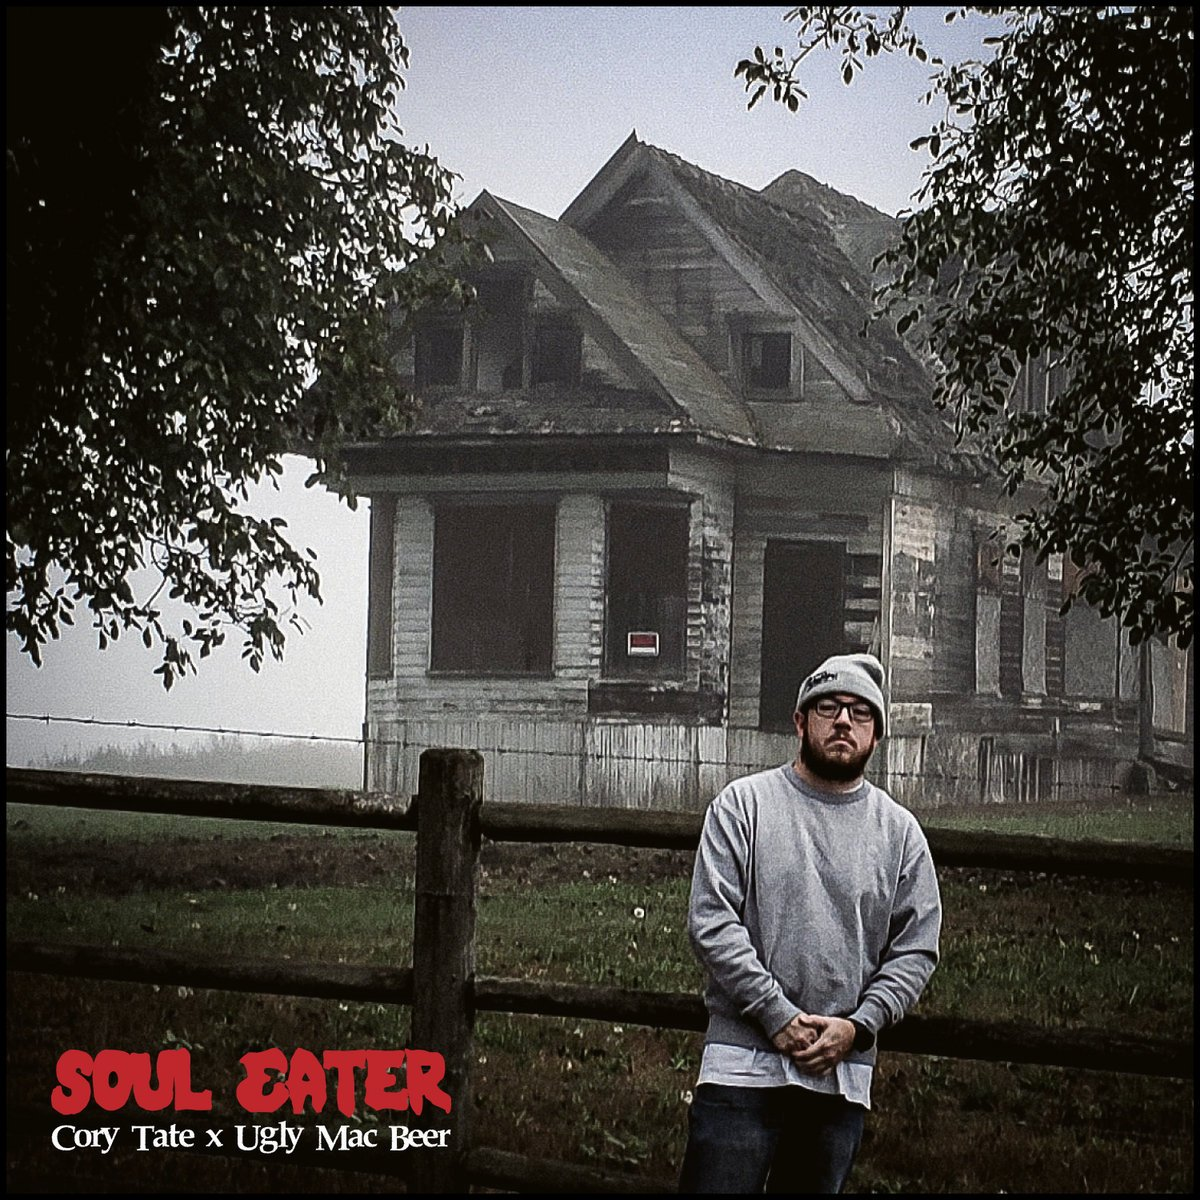 """Cover of """"Soul Eater"""", the single from Cory Tate features the MC standing outside of a creepy looking, abandoned white house."""